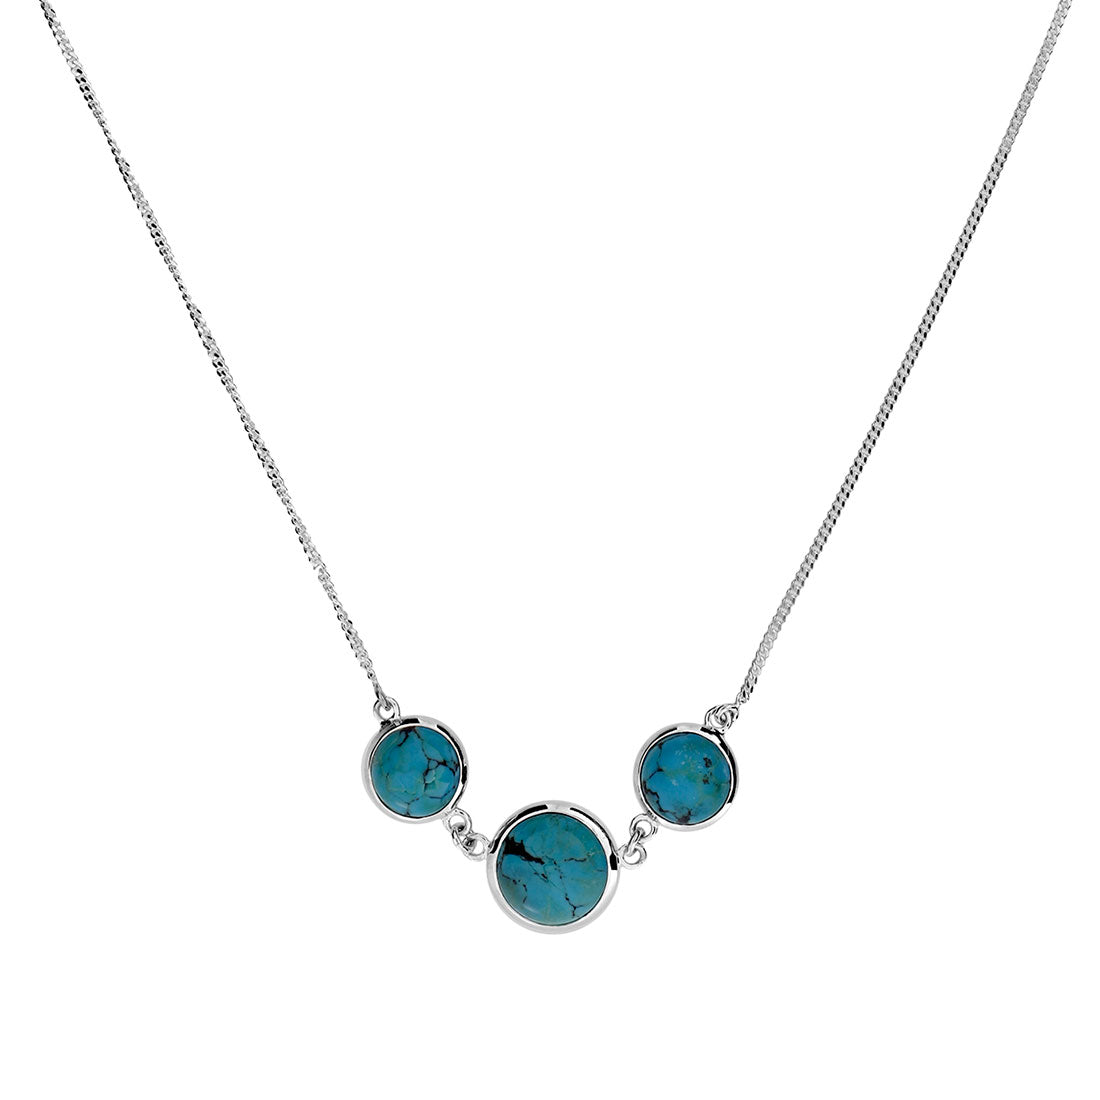 Silver & Turquoise 3 Stone Necklace